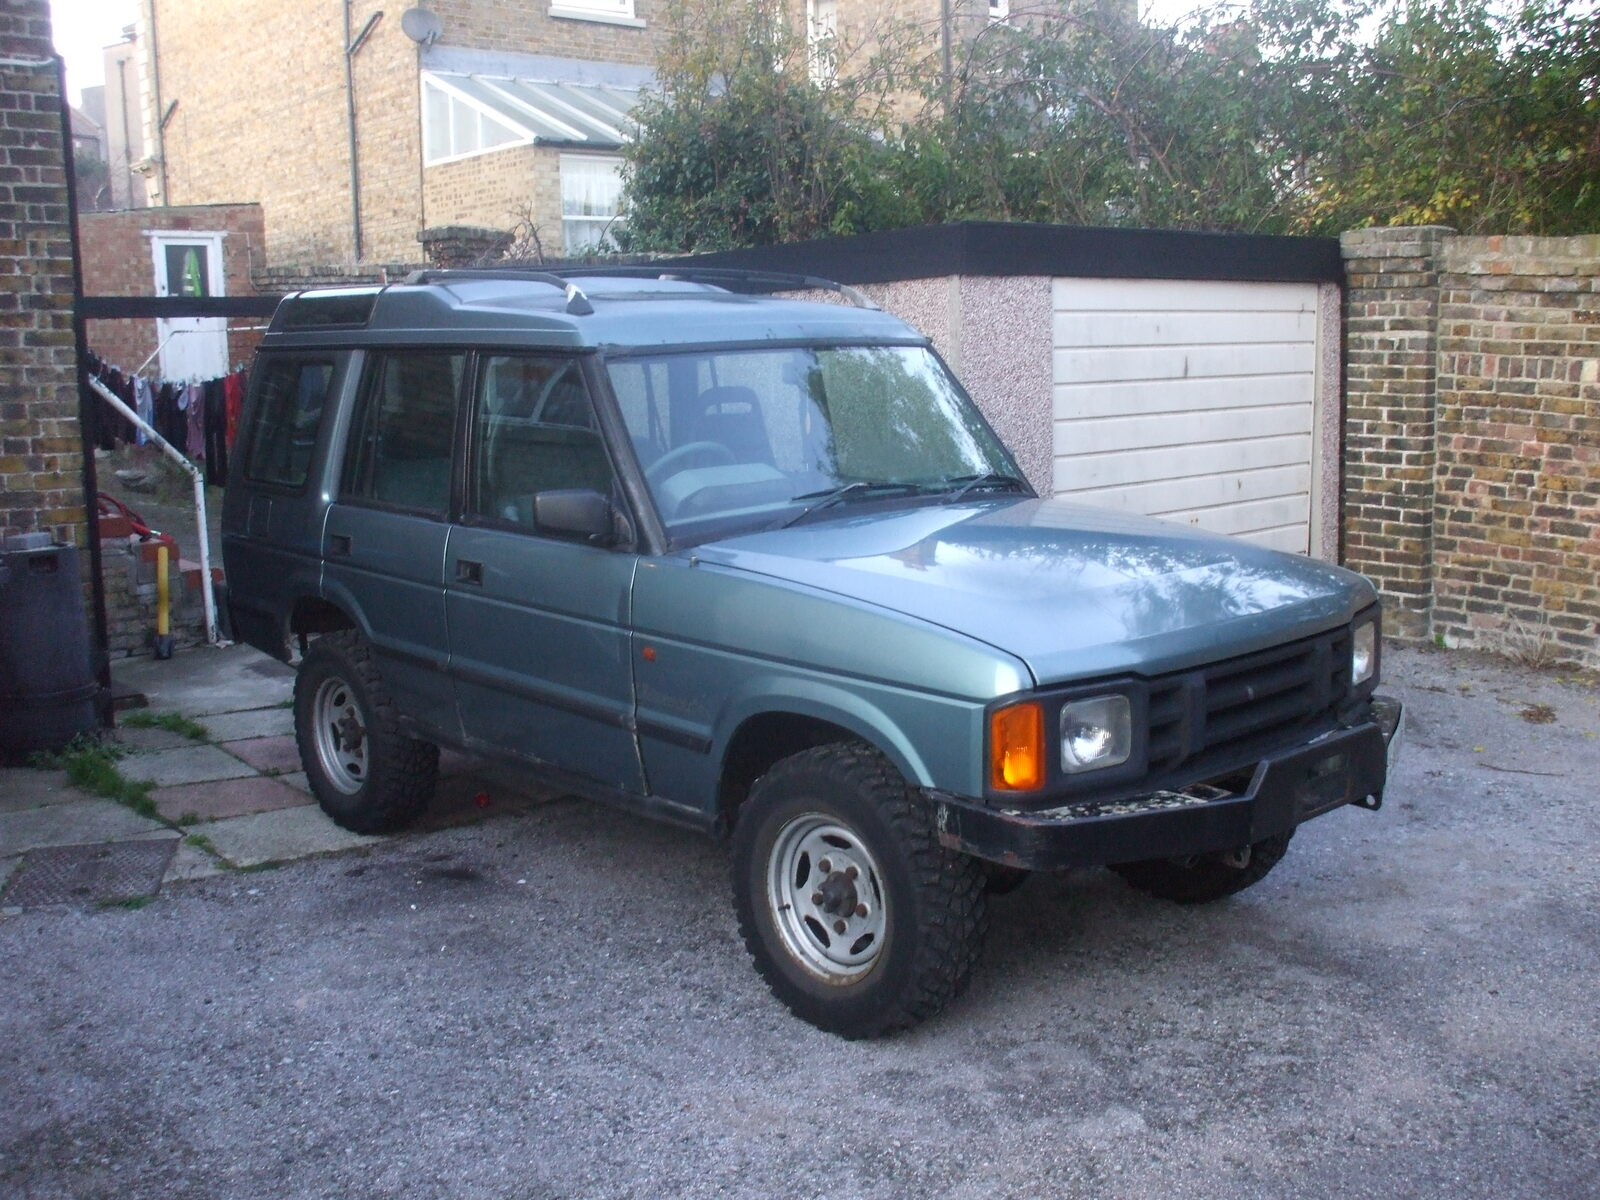 1993 land rover discovery 200tdi for sale | LandyZone - Land Rover